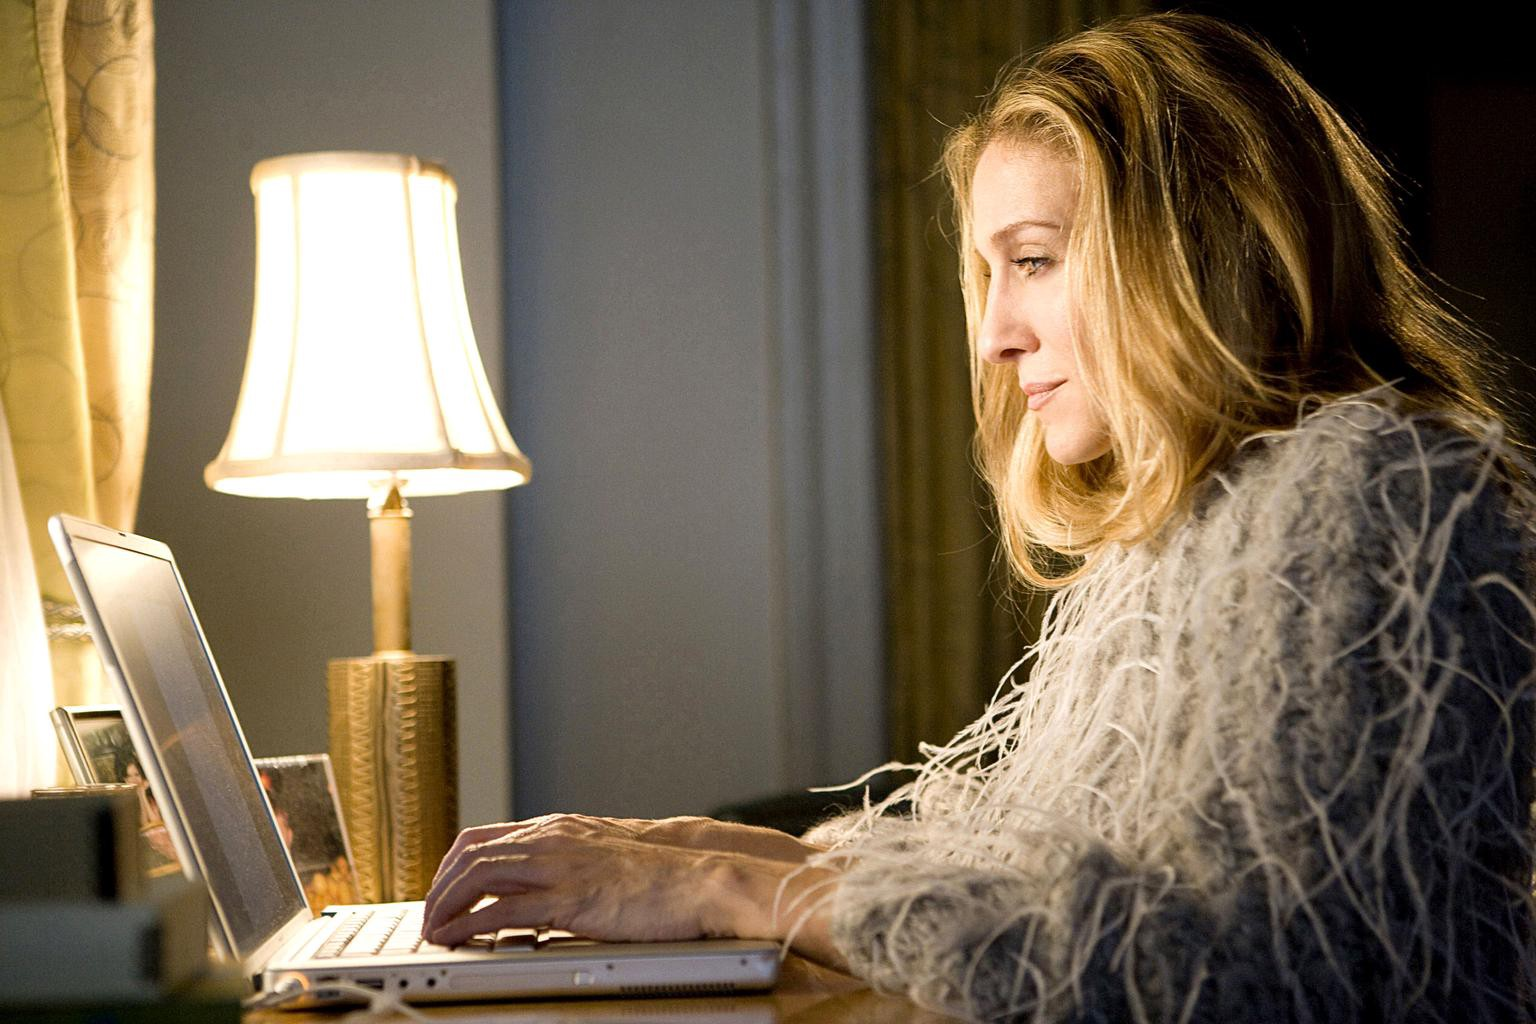 Carrie Bradshaw writing on her laptop in Sex and the City